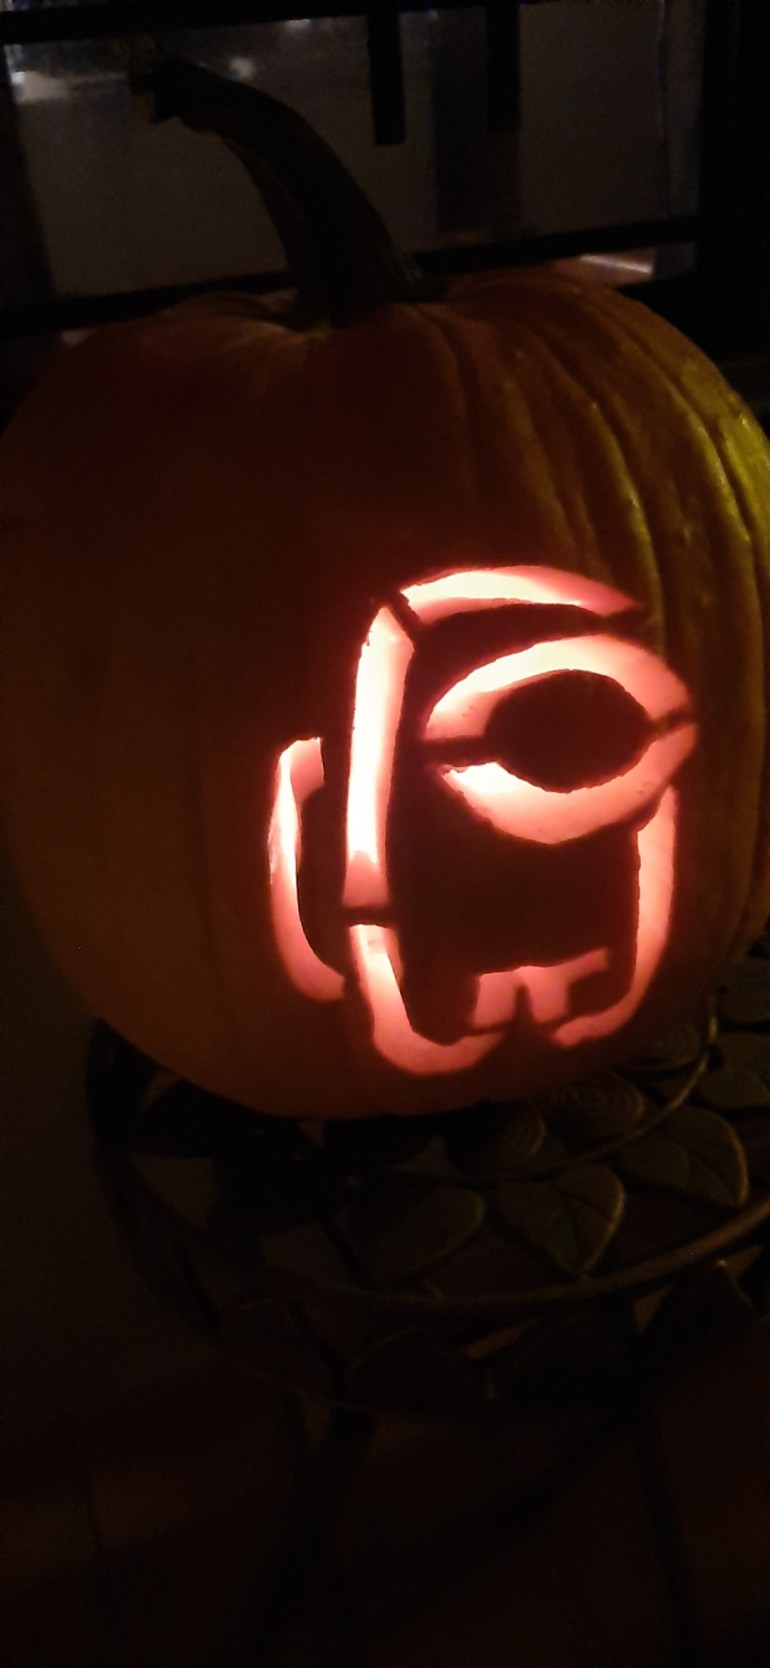 The Coolest Among Us Pumpkin Carving Pics Check Them Out Ask cadaverkeys a question #rambles #trust no one not even yourself. coolest among us pumpkin carving pics